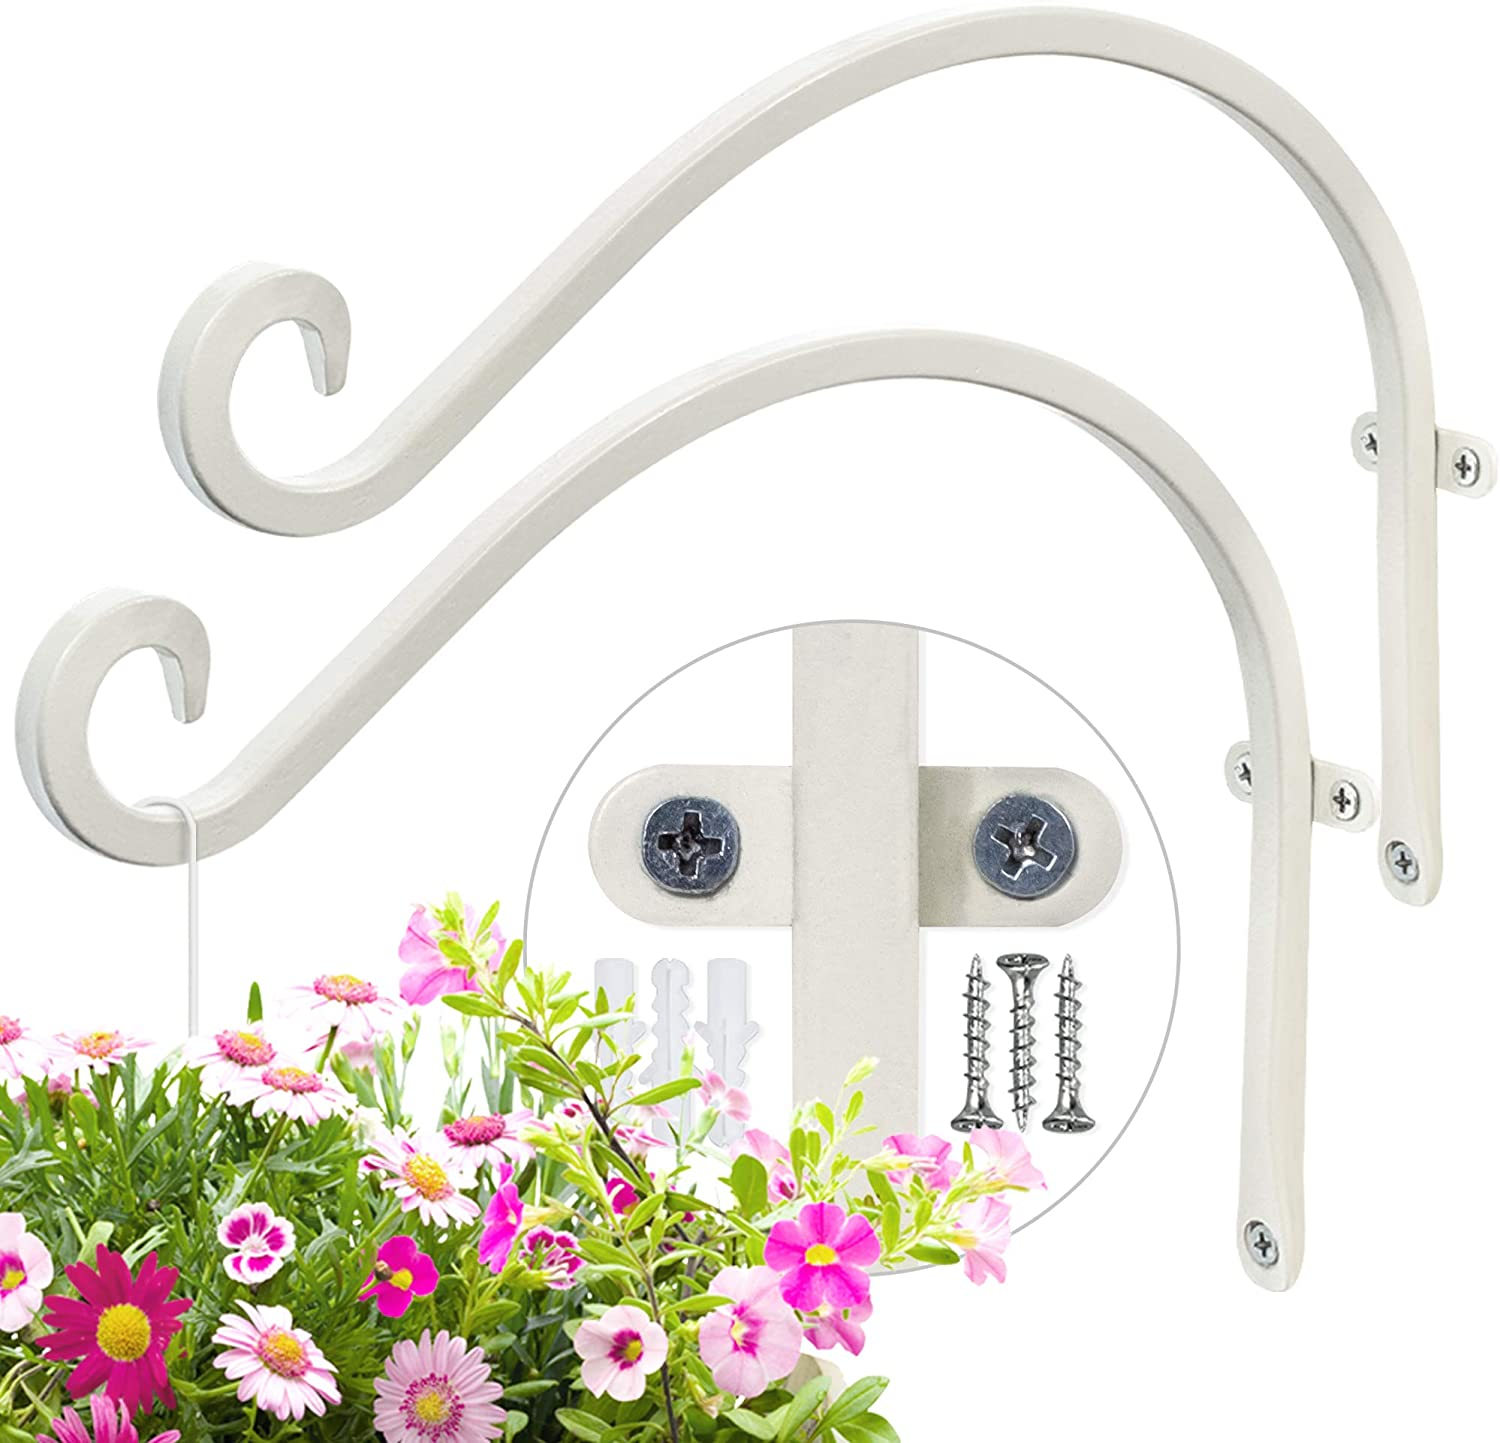 AJART Plant Hooks Special sale item Super sale period limited for Wall Pieces 2 - 12Inches